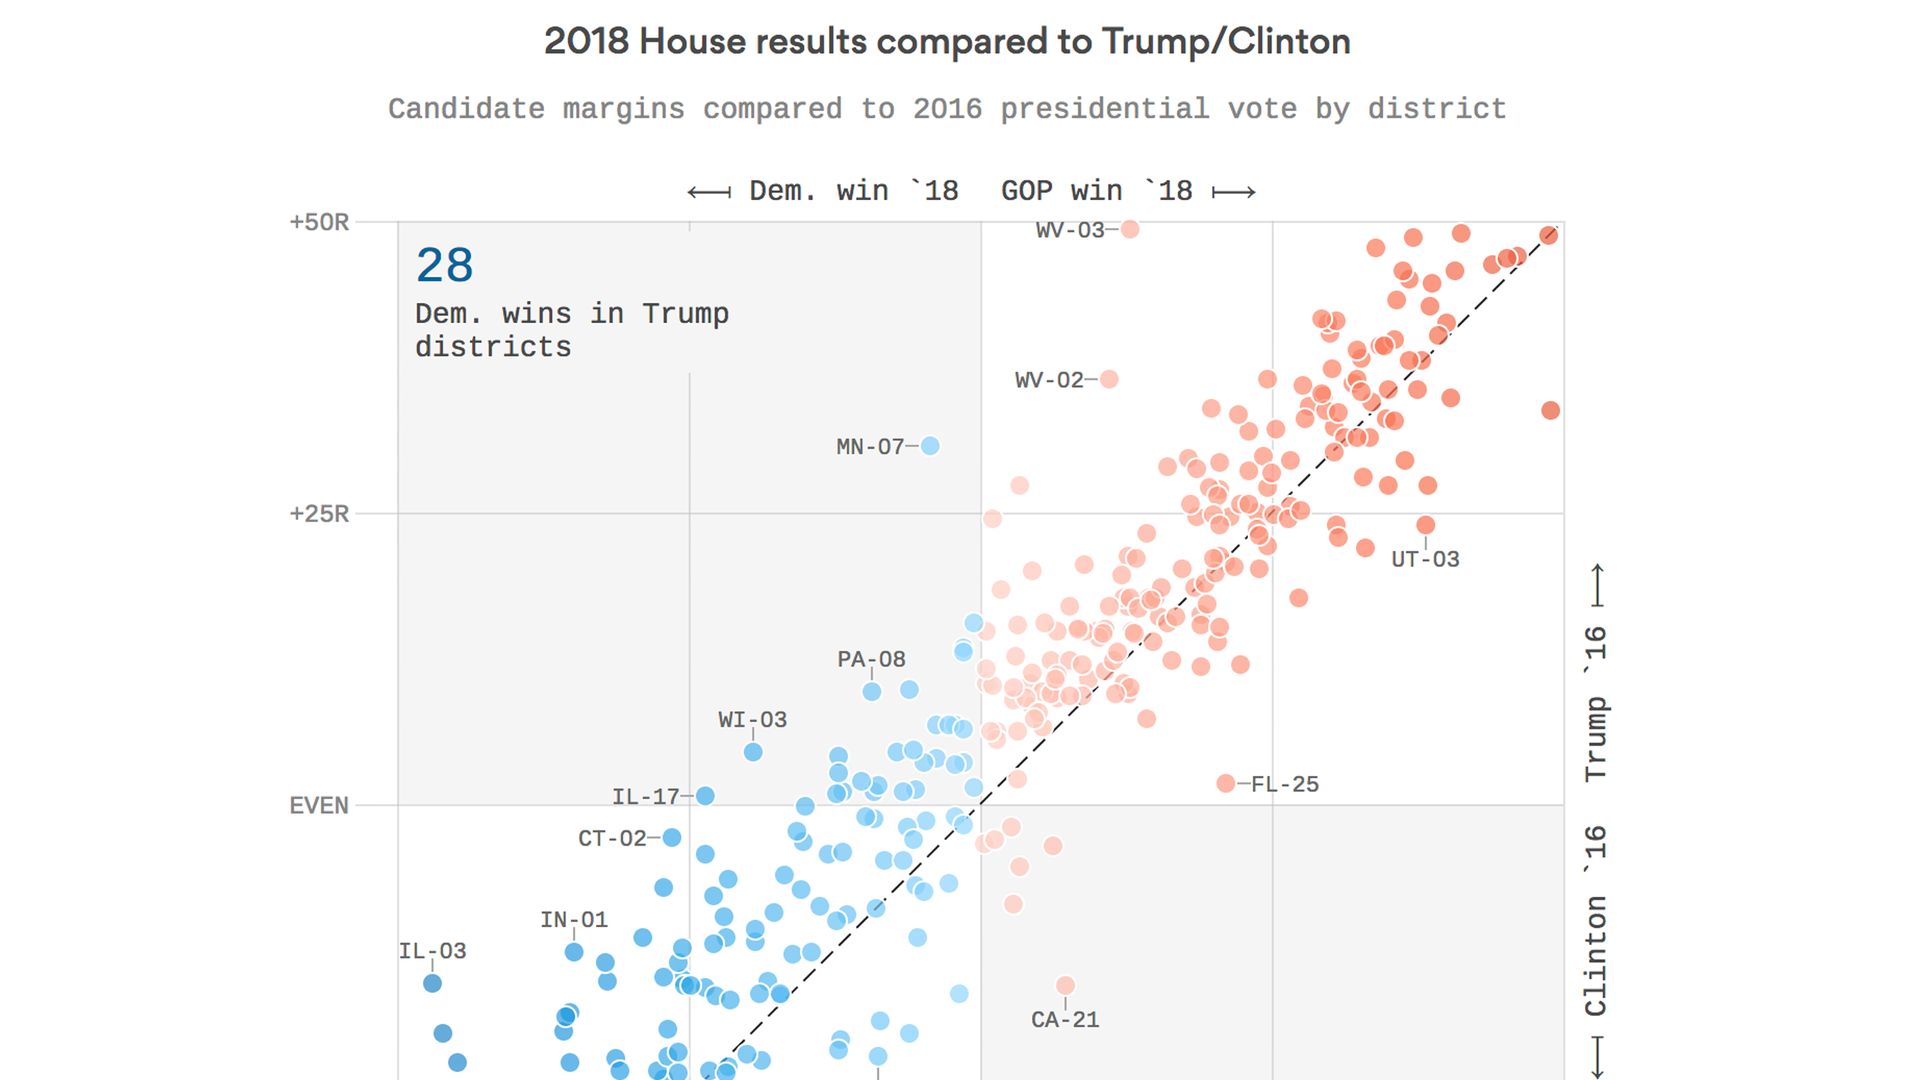 Democratic House candidates got more votes than Hillary Clinton in 2016